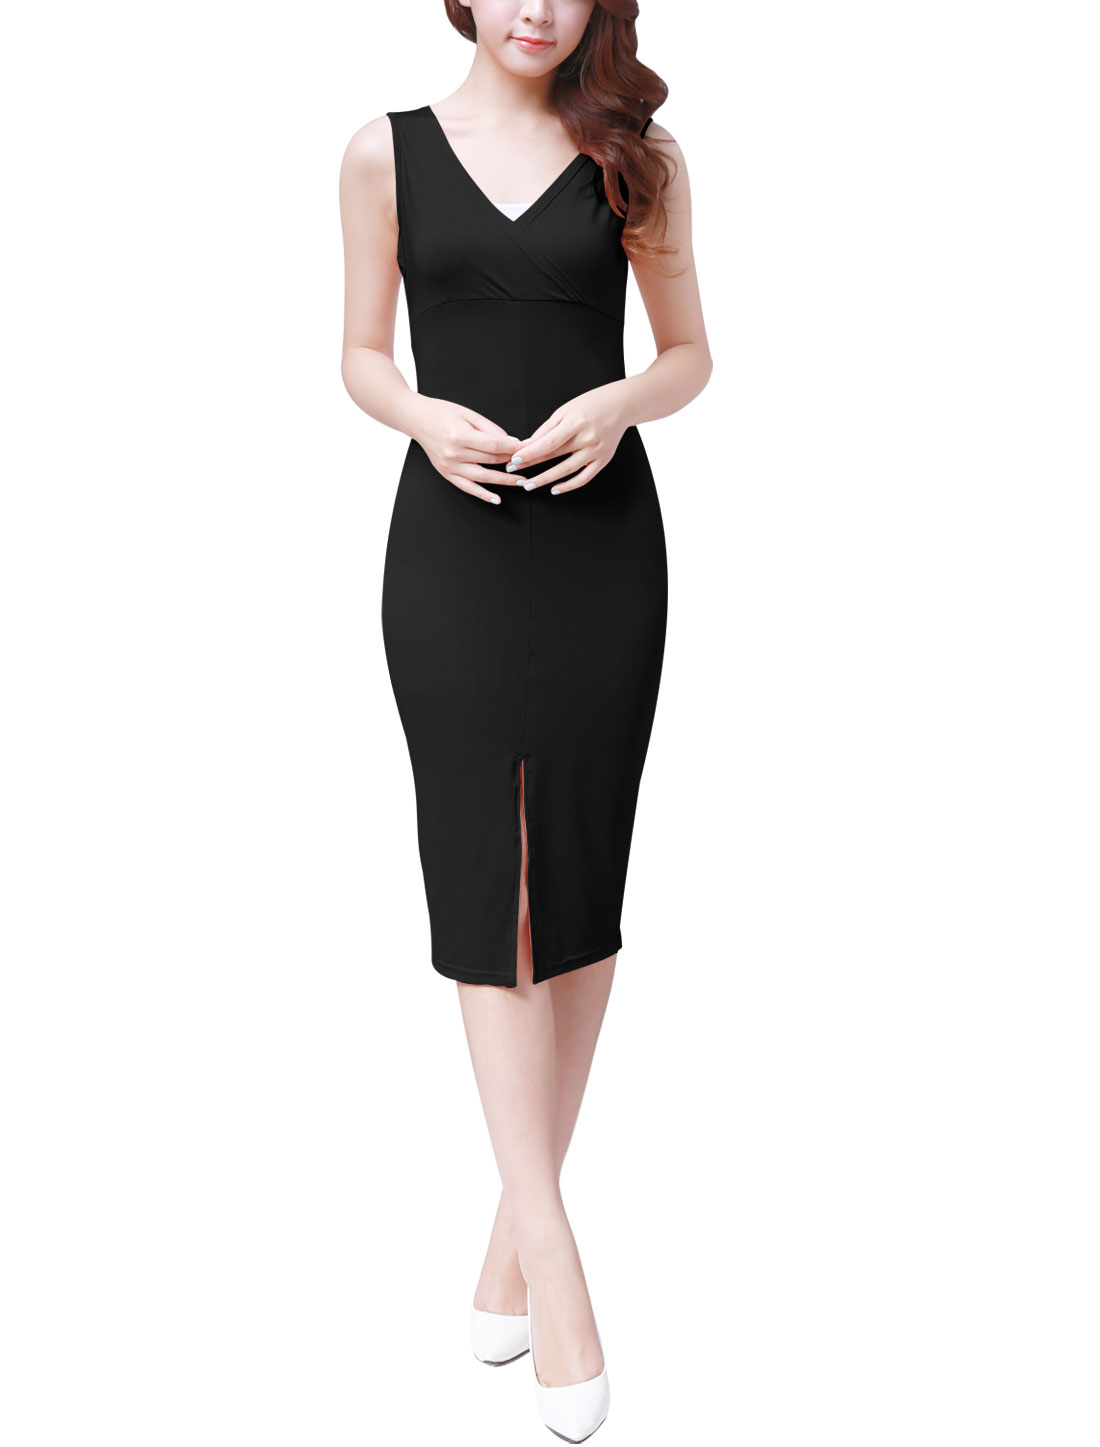 Women NEW V-Neck Design Pure Color Black Knee-Length Tank Dress XL